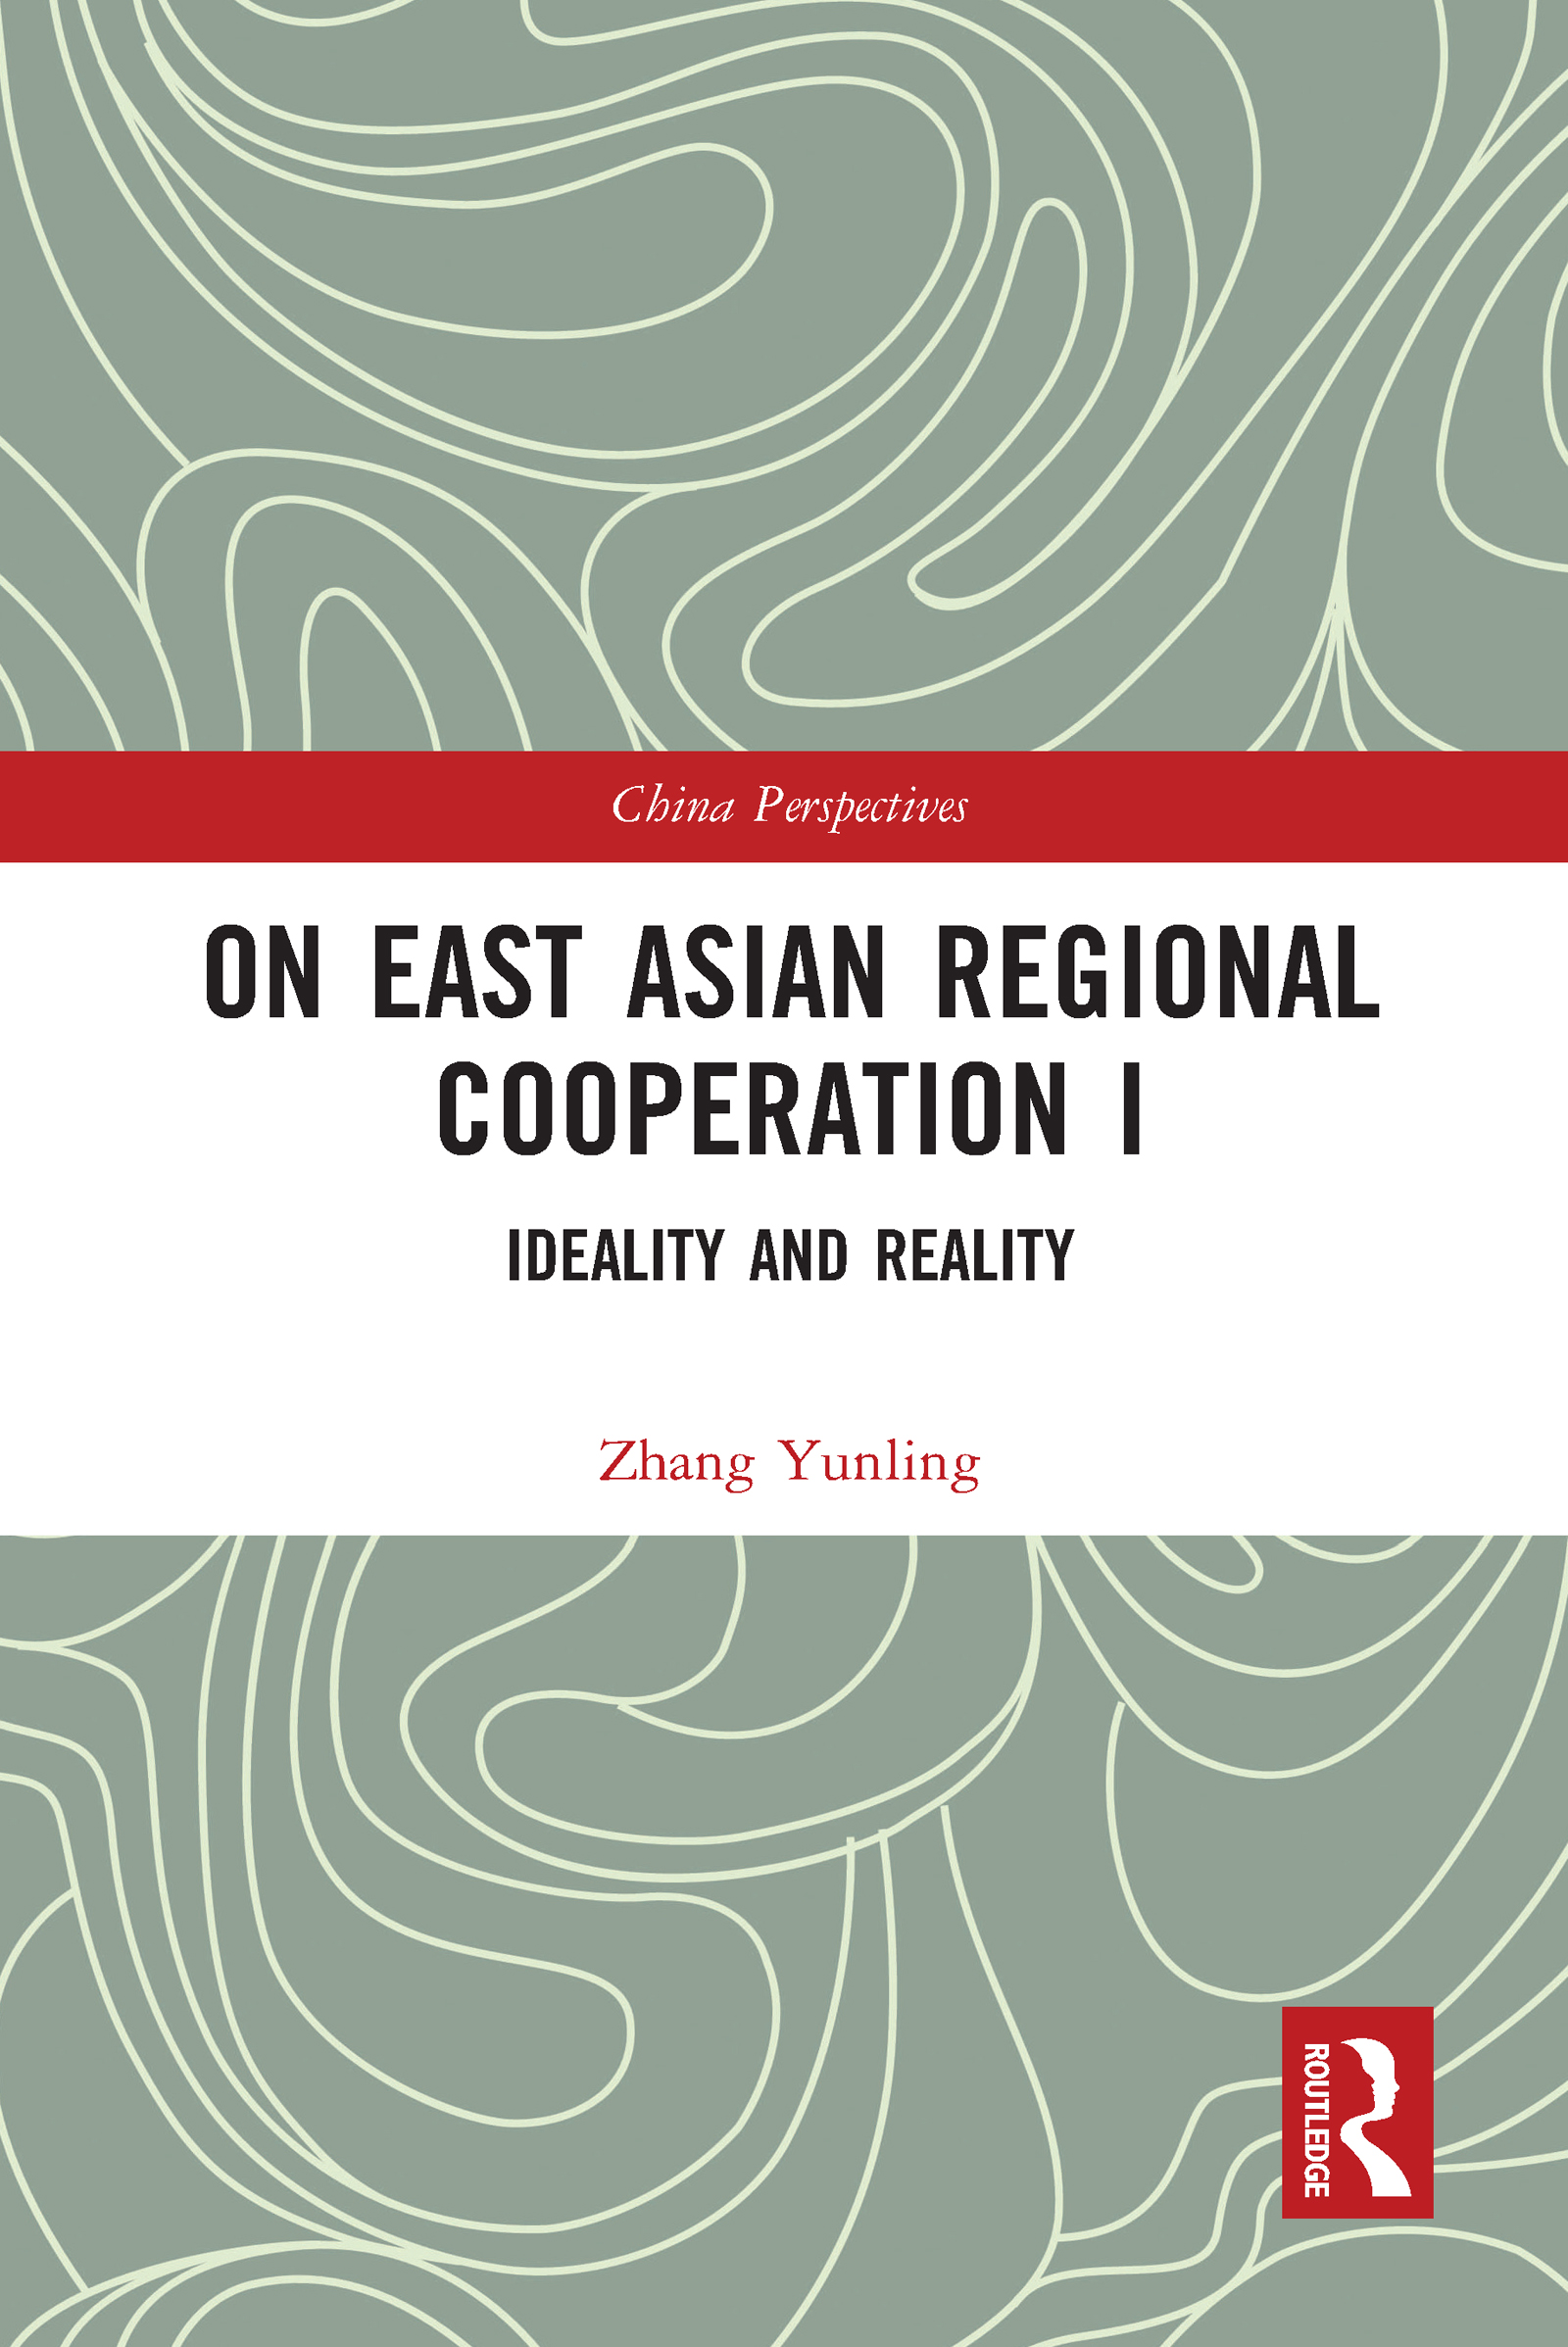 On East Asian Regional Cooperation I